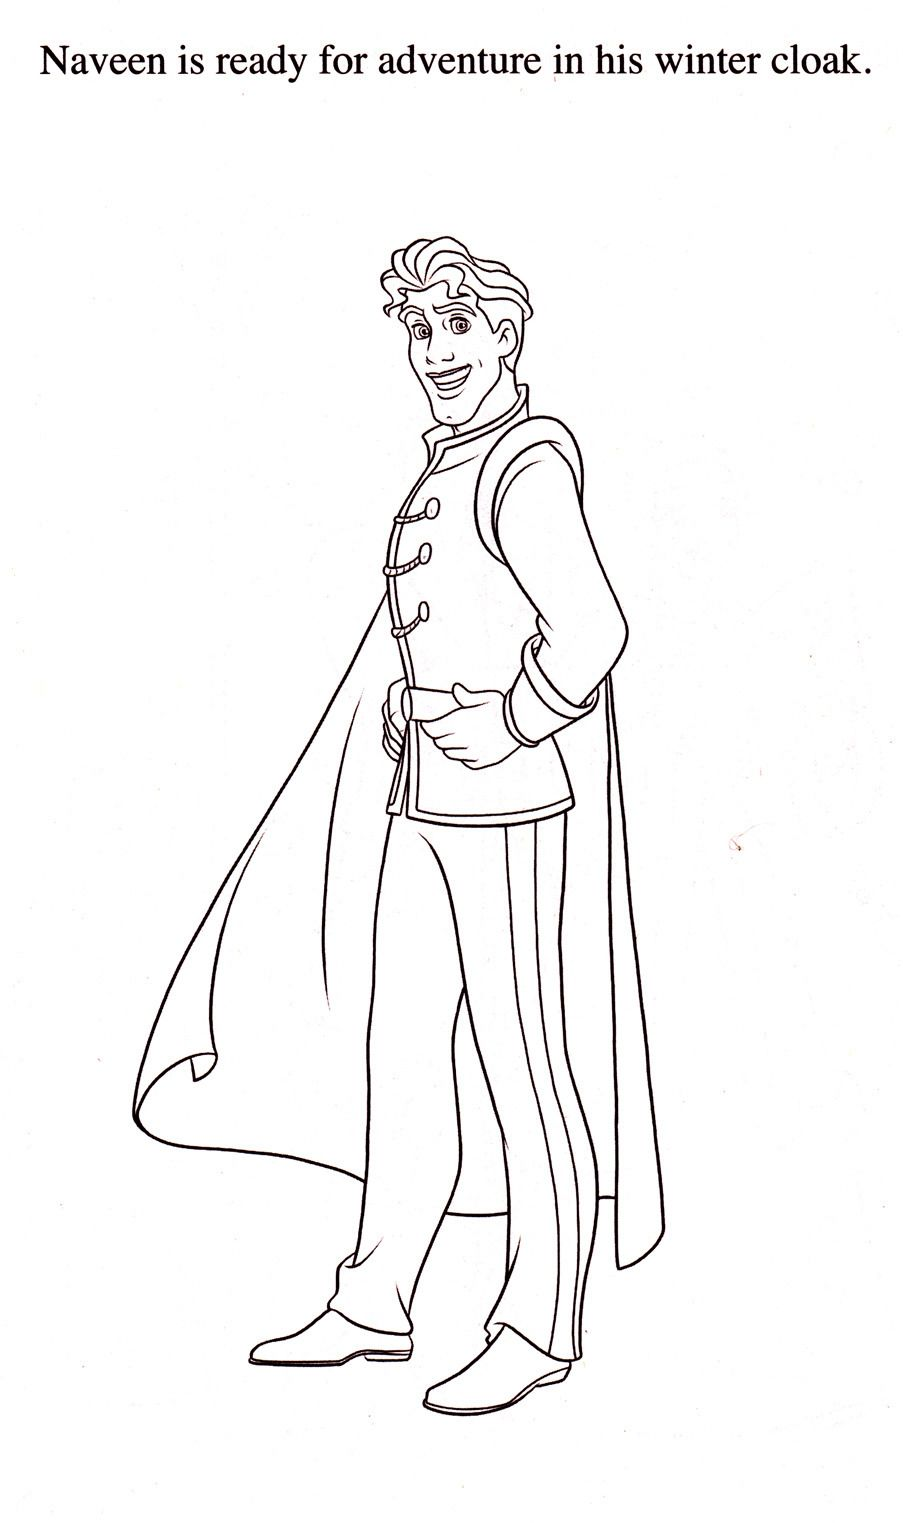 Prince Naveen Disney Coloring Pages Descendants Coloring Pages